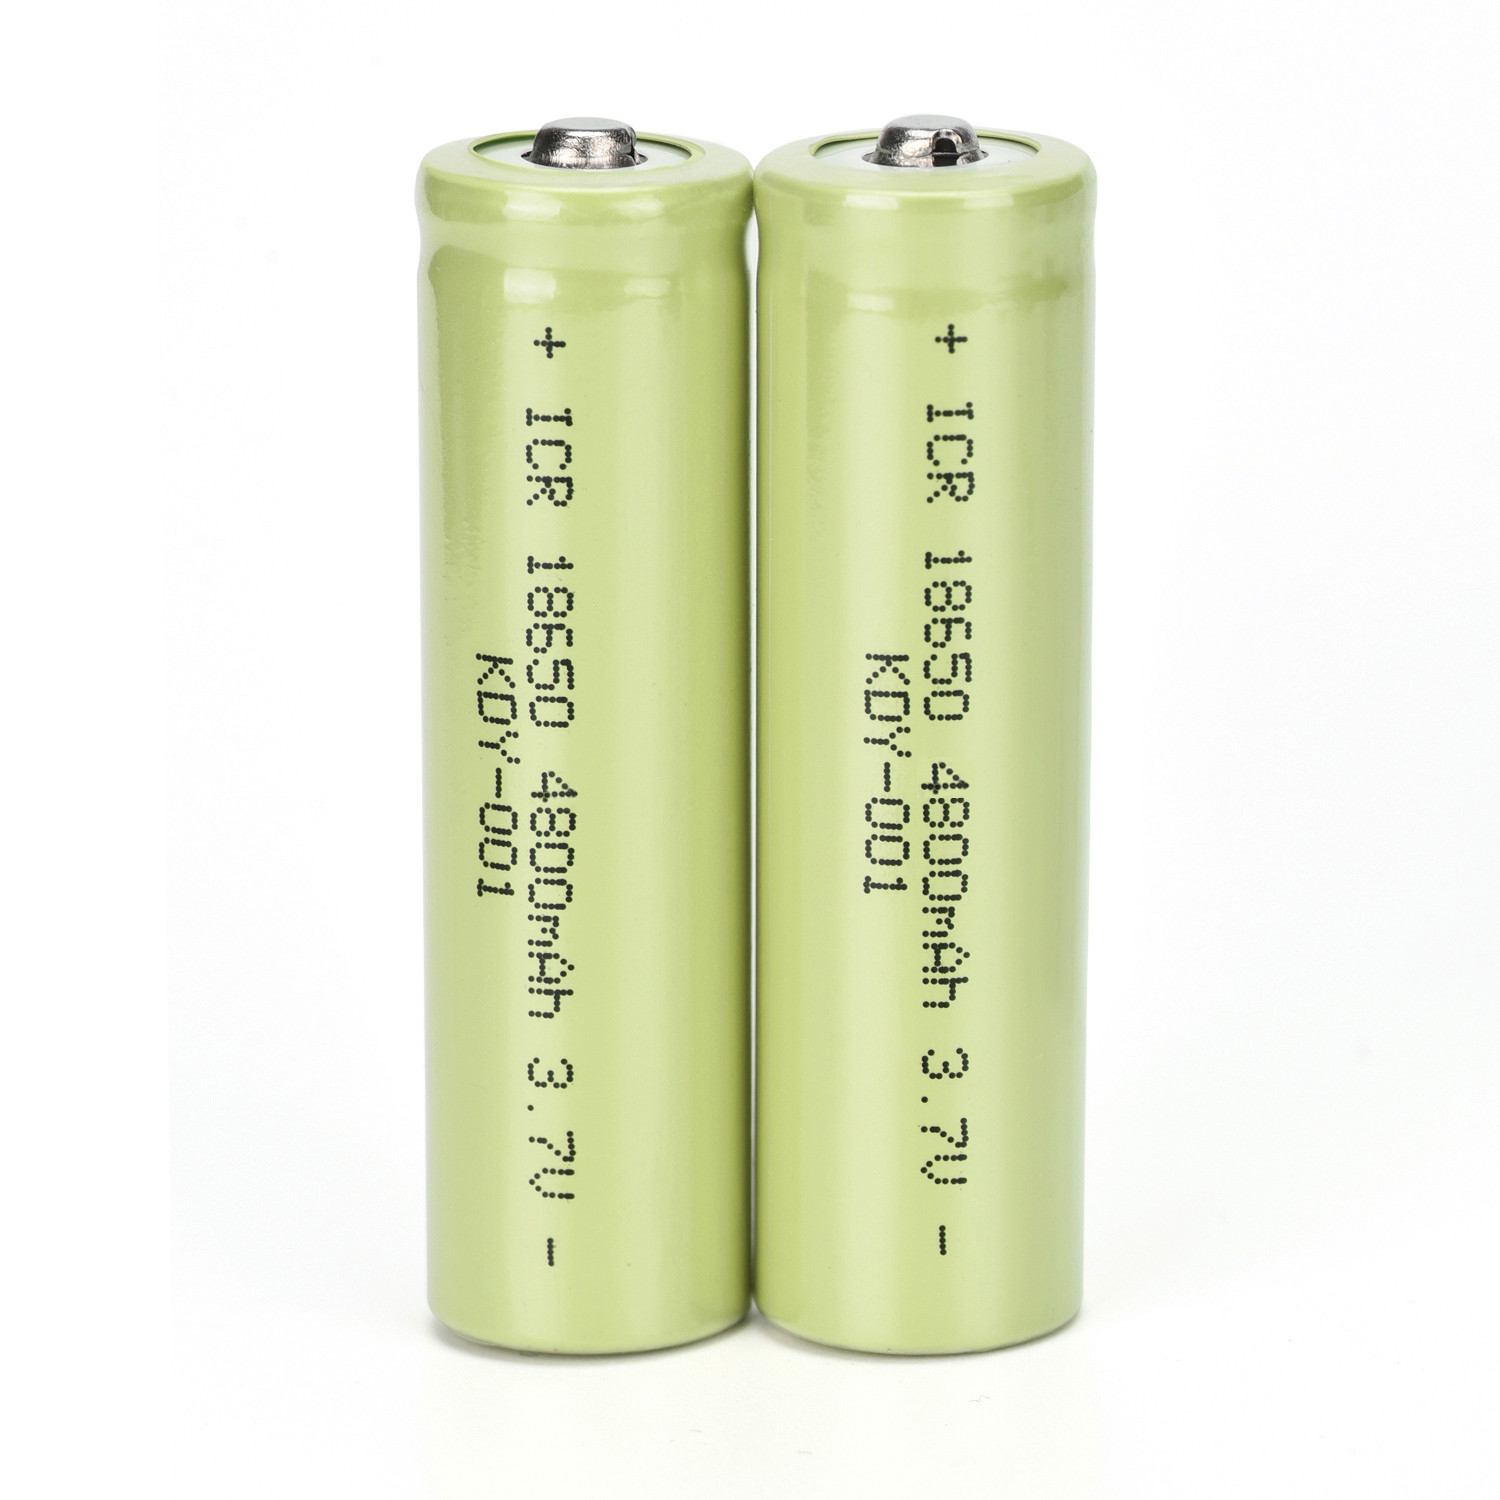 ISHOWTIENDA 2PCS 3.7V 4800mAH Li-ion Rechargeable 18650 Battery For Flashlight Torch emergency lighting